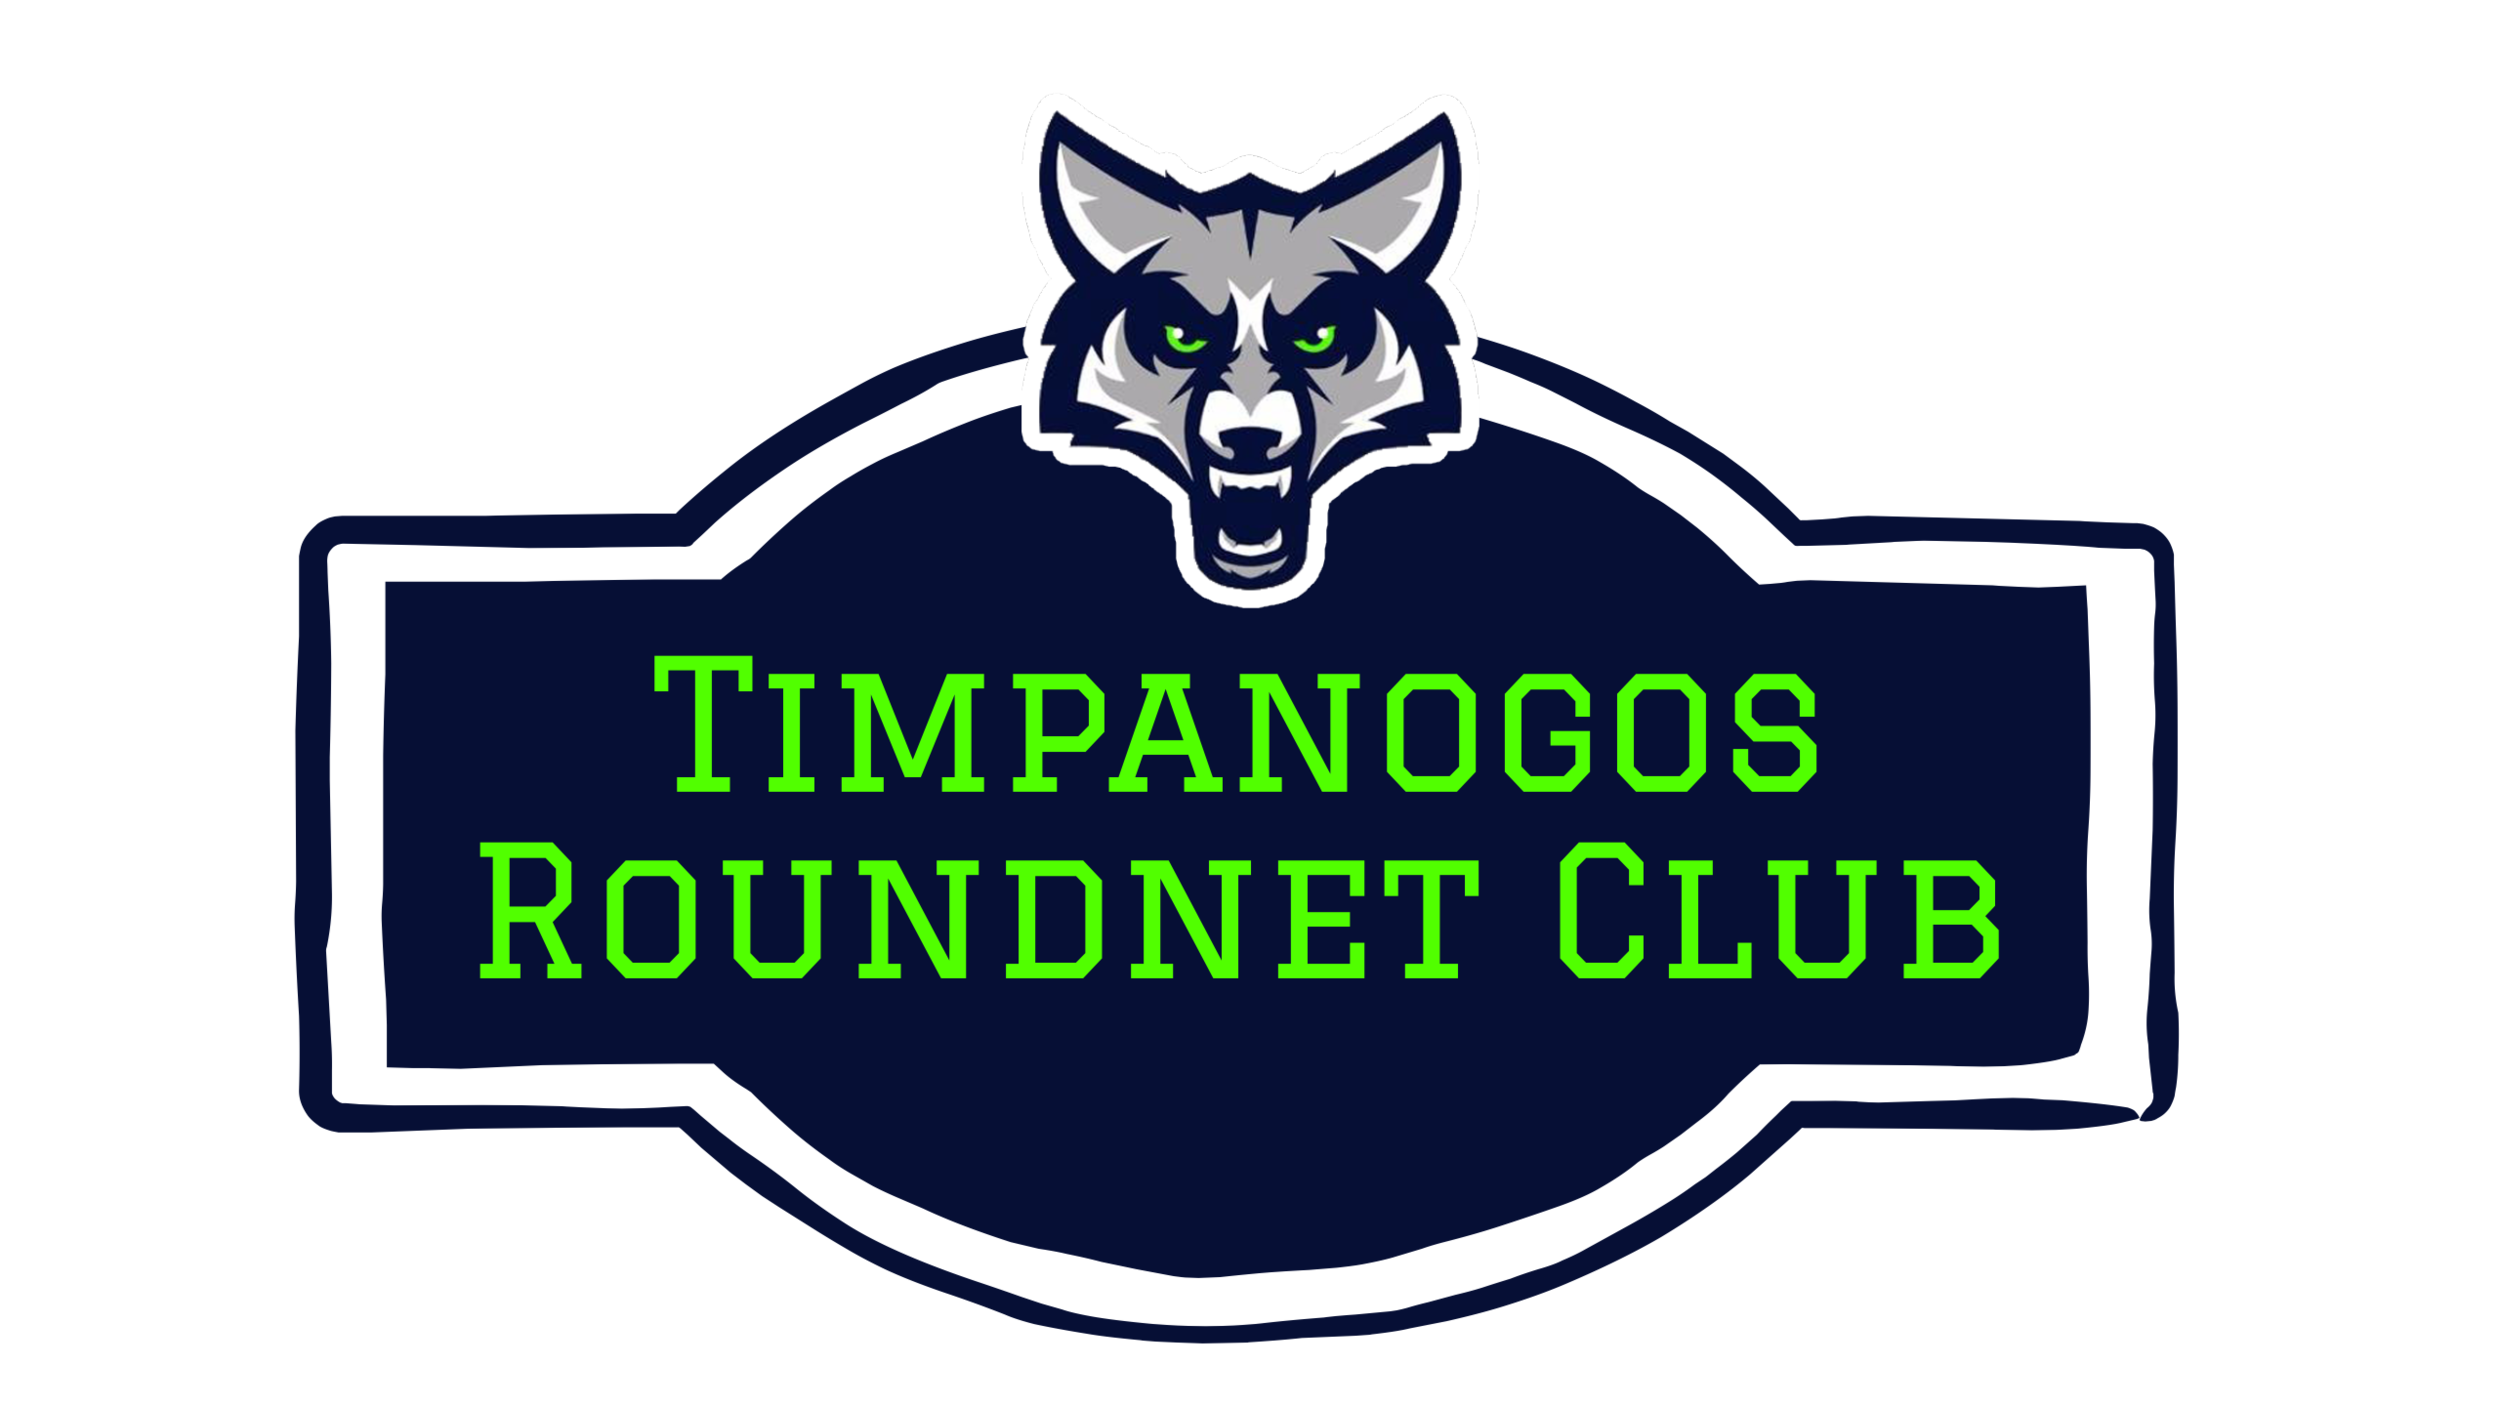 timpanogos-roundnet-club.png